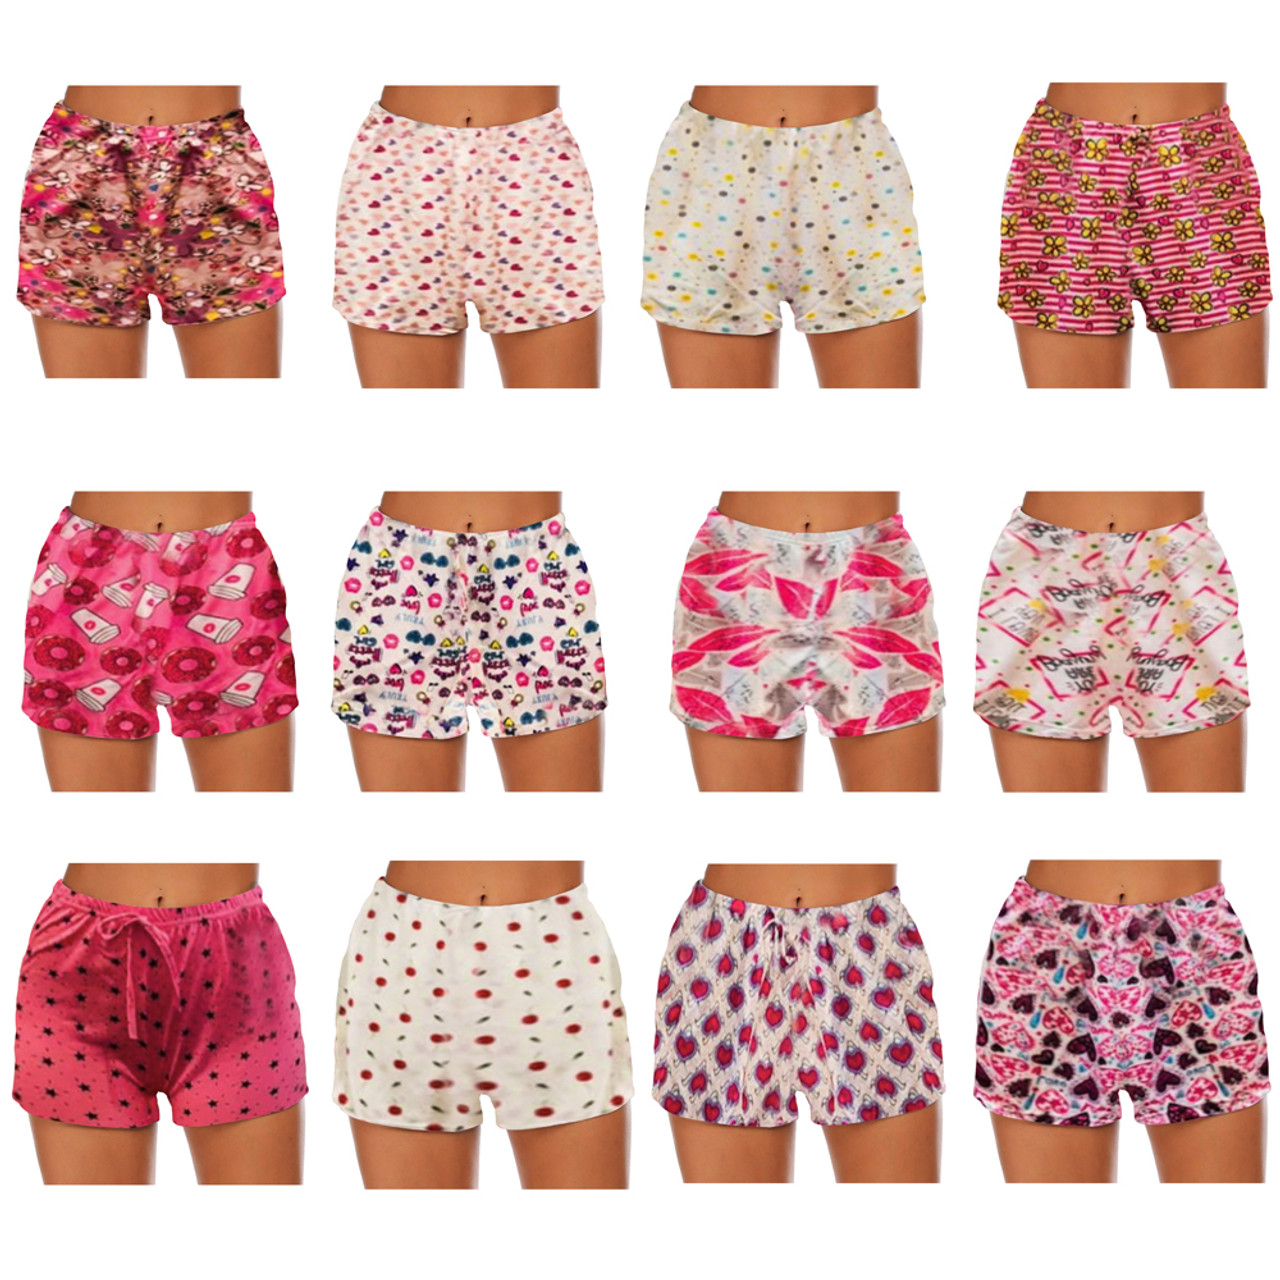 3-Pack Women's Soft Pajama Shorts with Drawstring